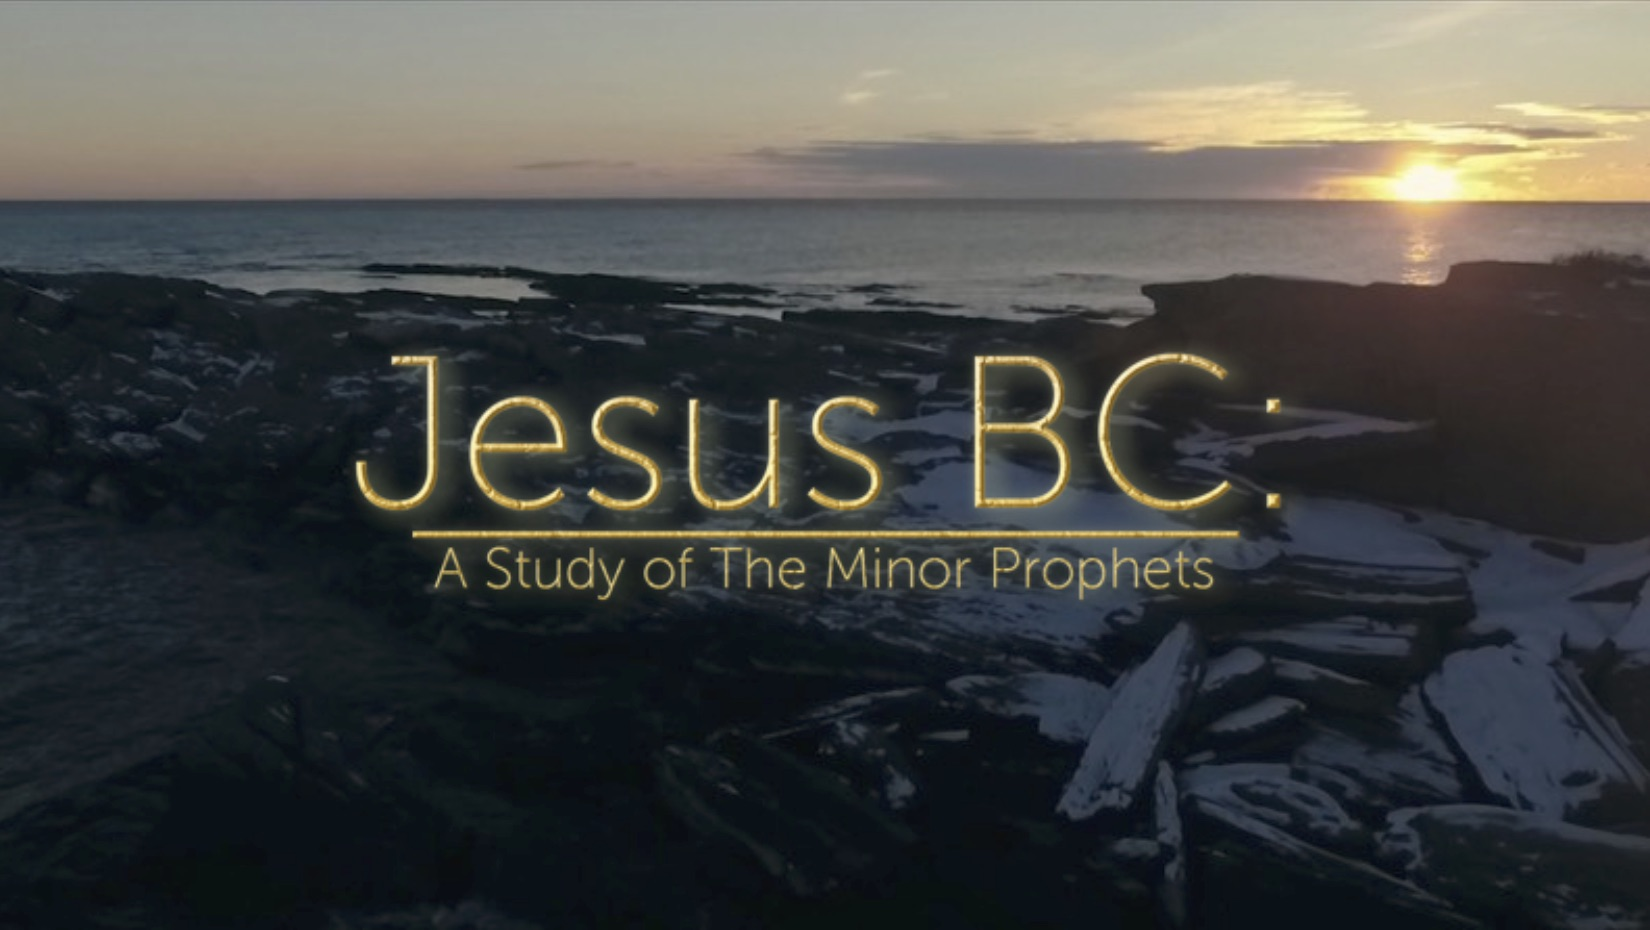 The entire Bible is centered on Christ. This is our study through the Minor Prophets.